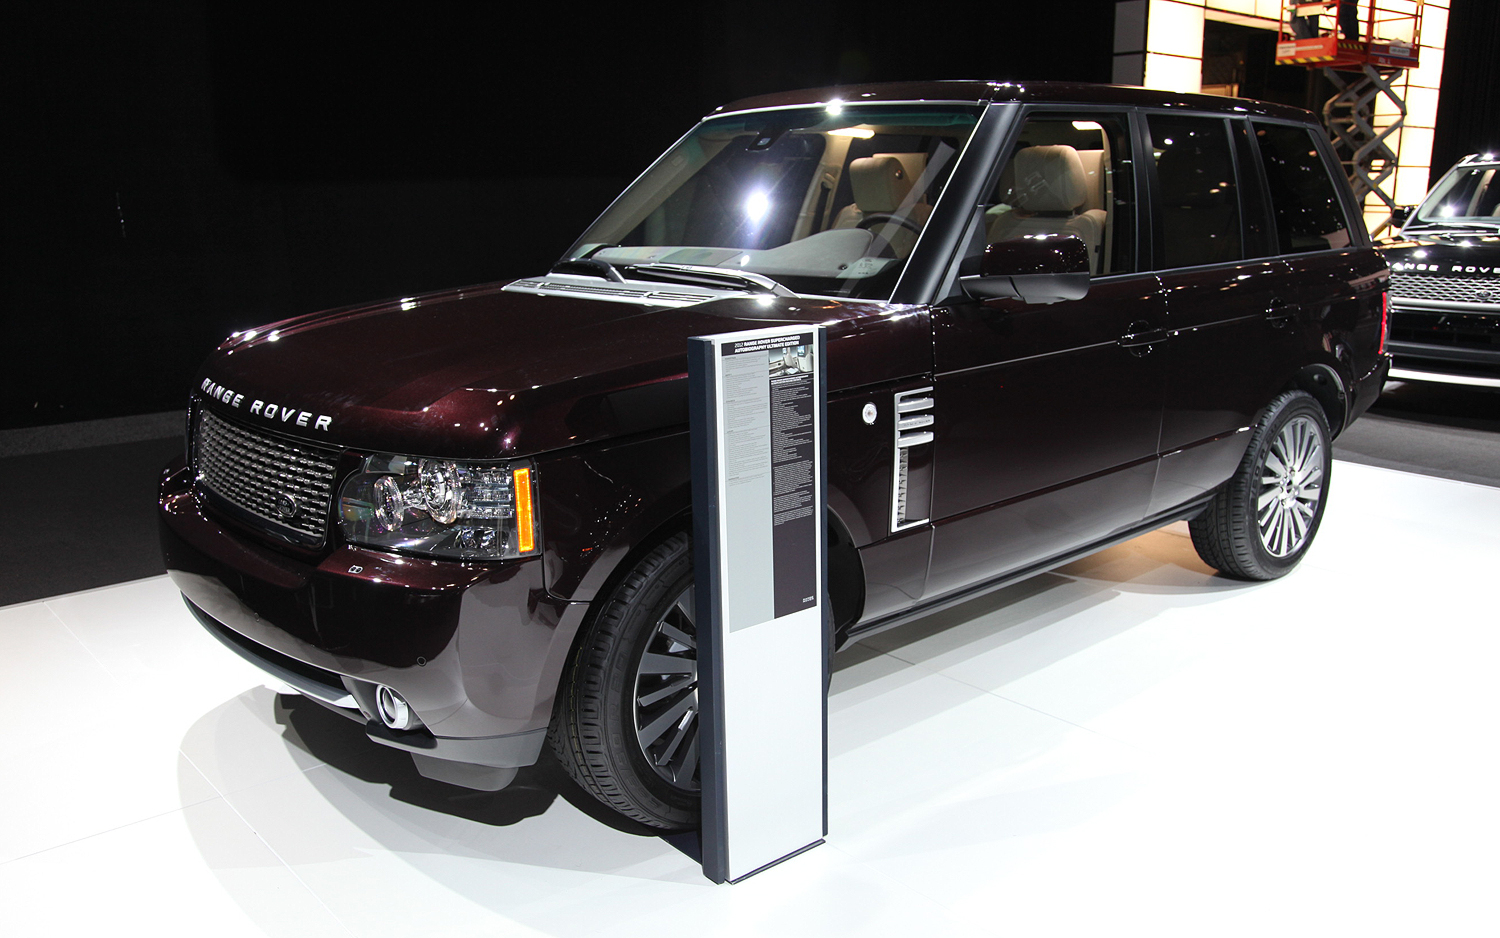 2012 Range Rover Autobiography Ultimate - Motor Trend